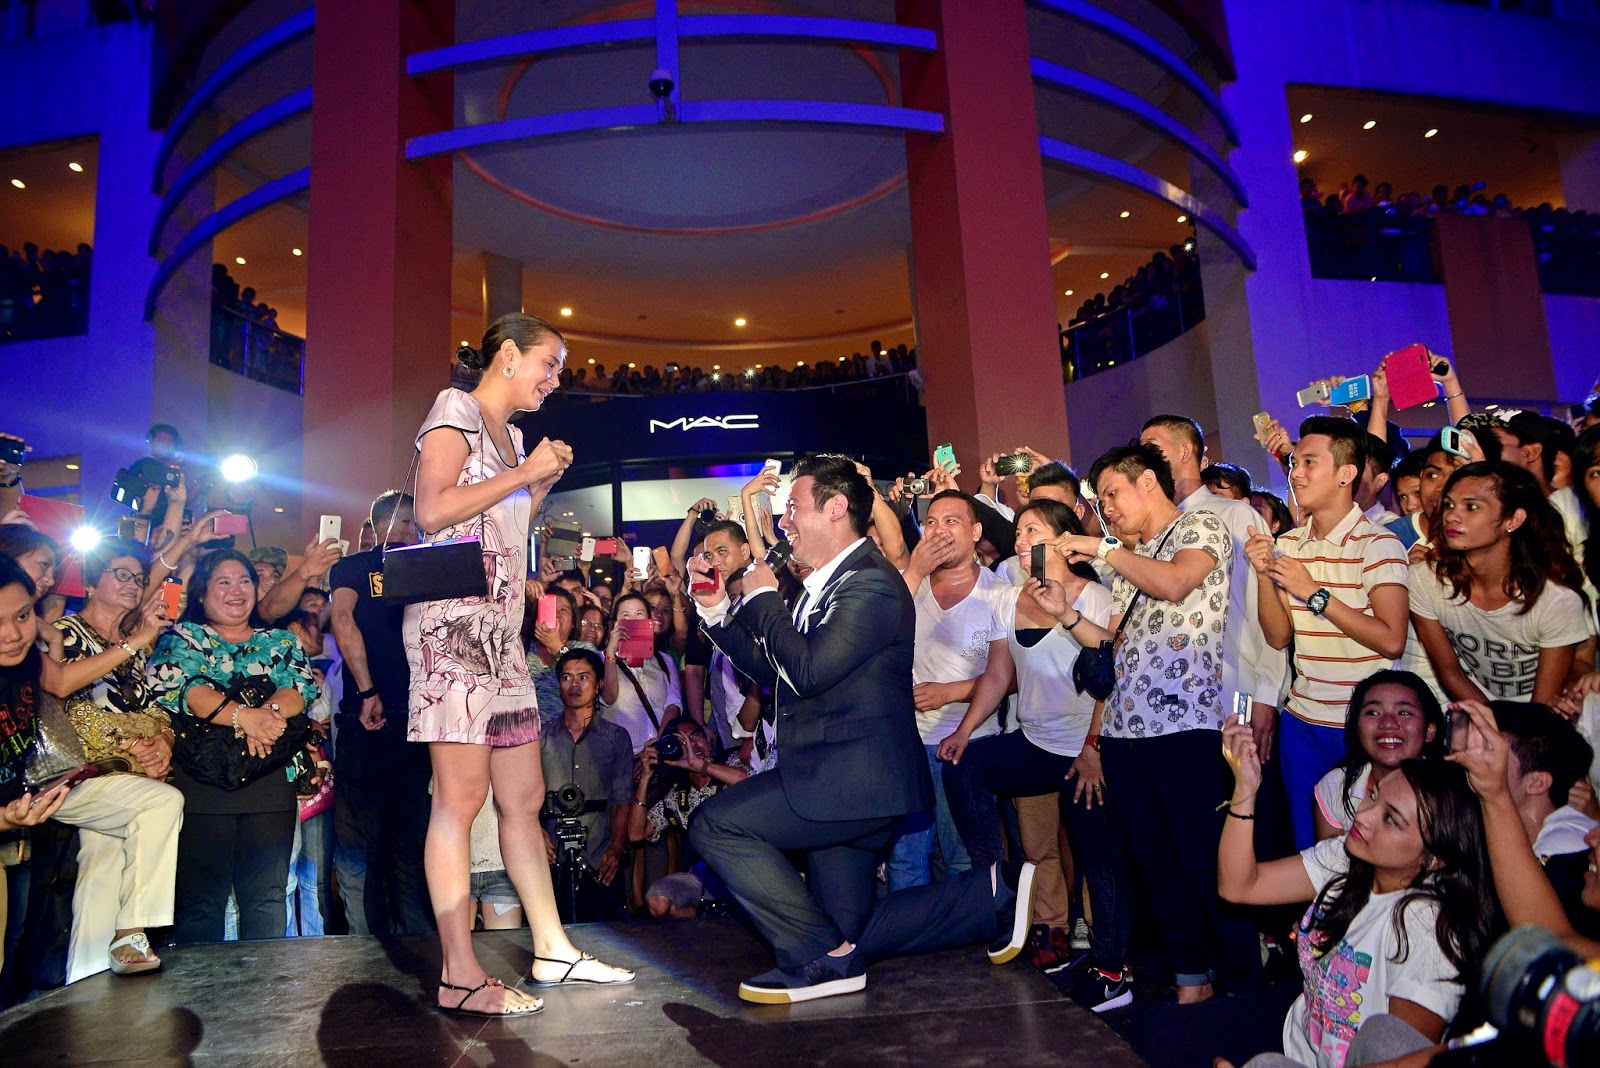 John Prats' proposal video to Isabel Oli